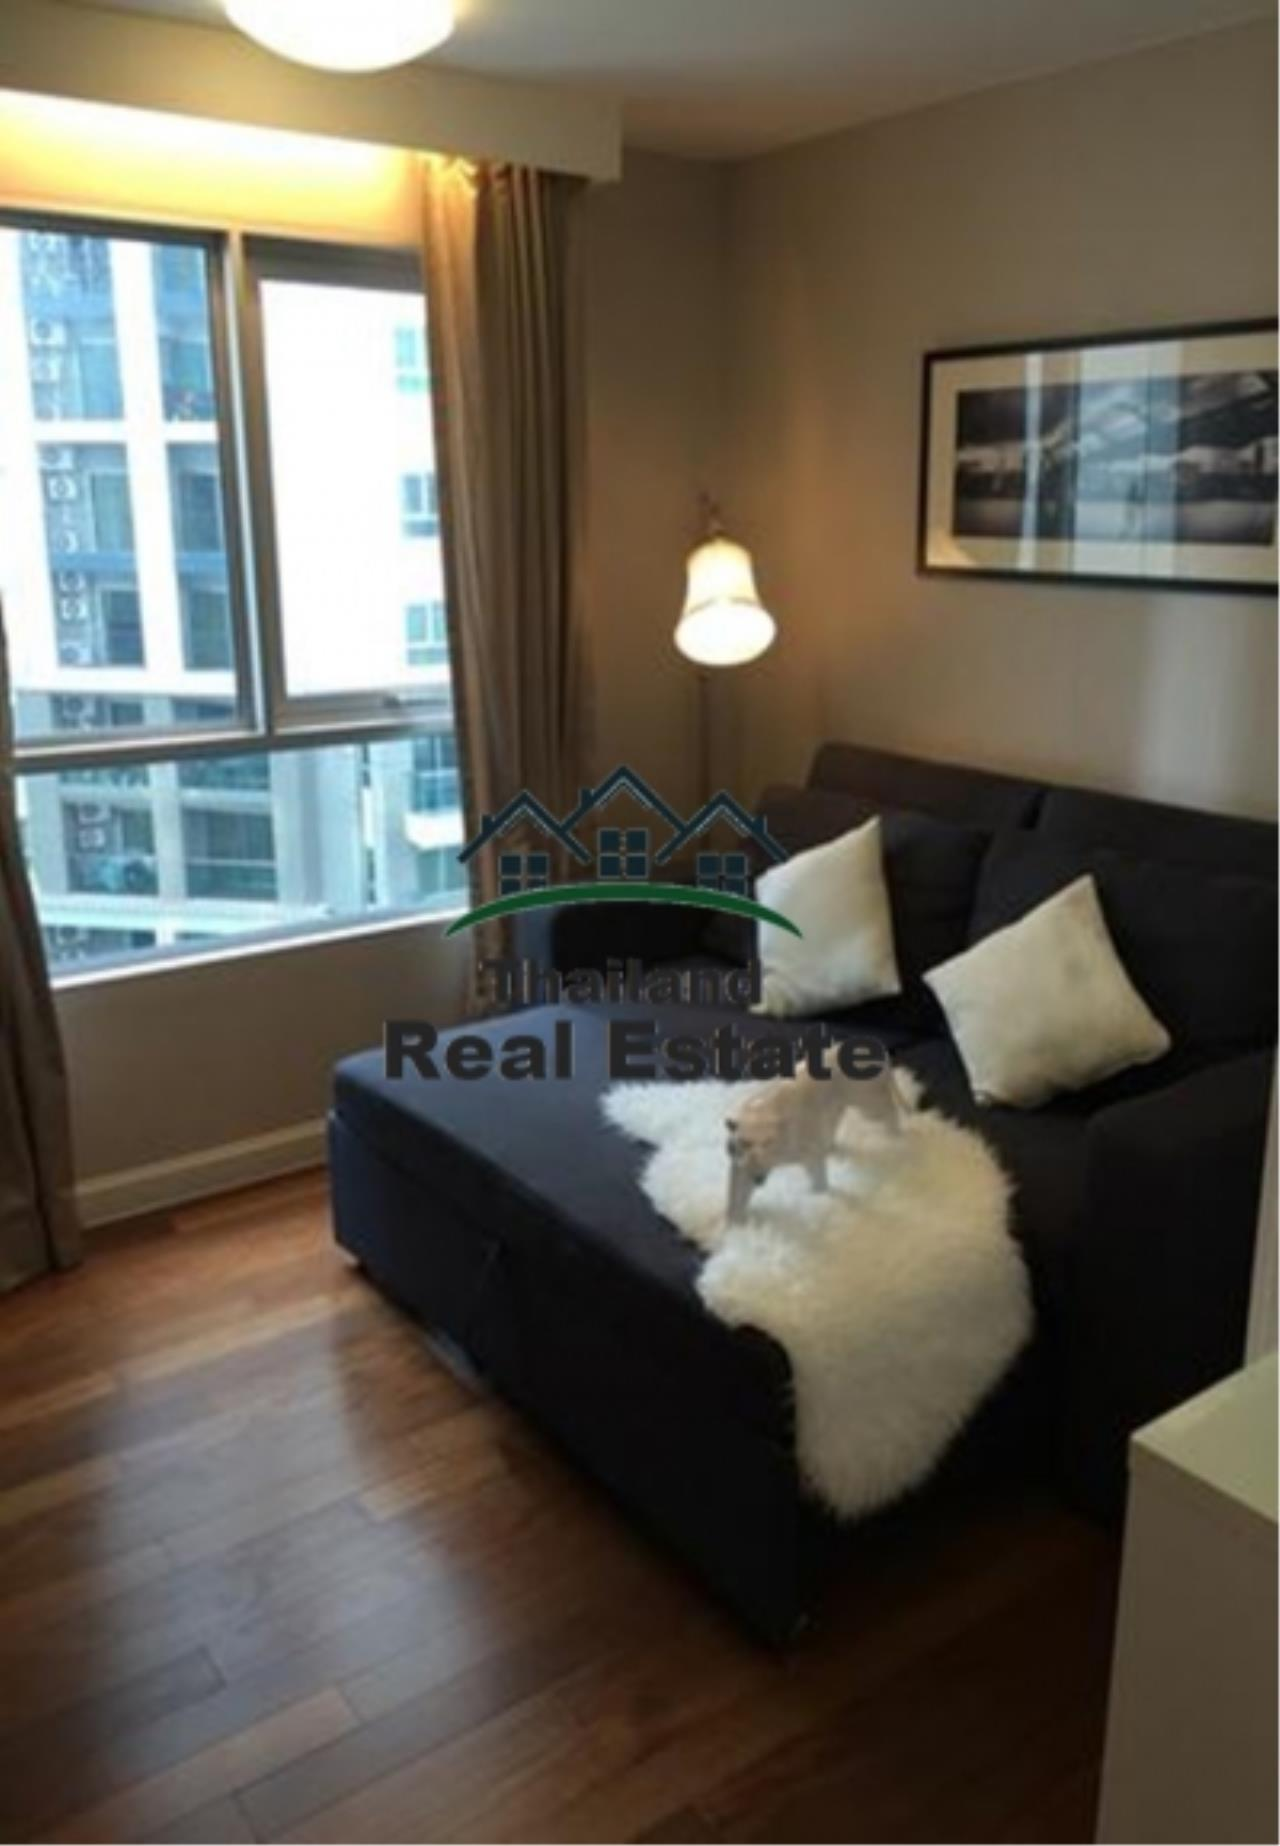 Thailand Real Estate Agency's 3 Bedroom Condo at Belle Grand near MRT Phra Rham 9(12667) 3